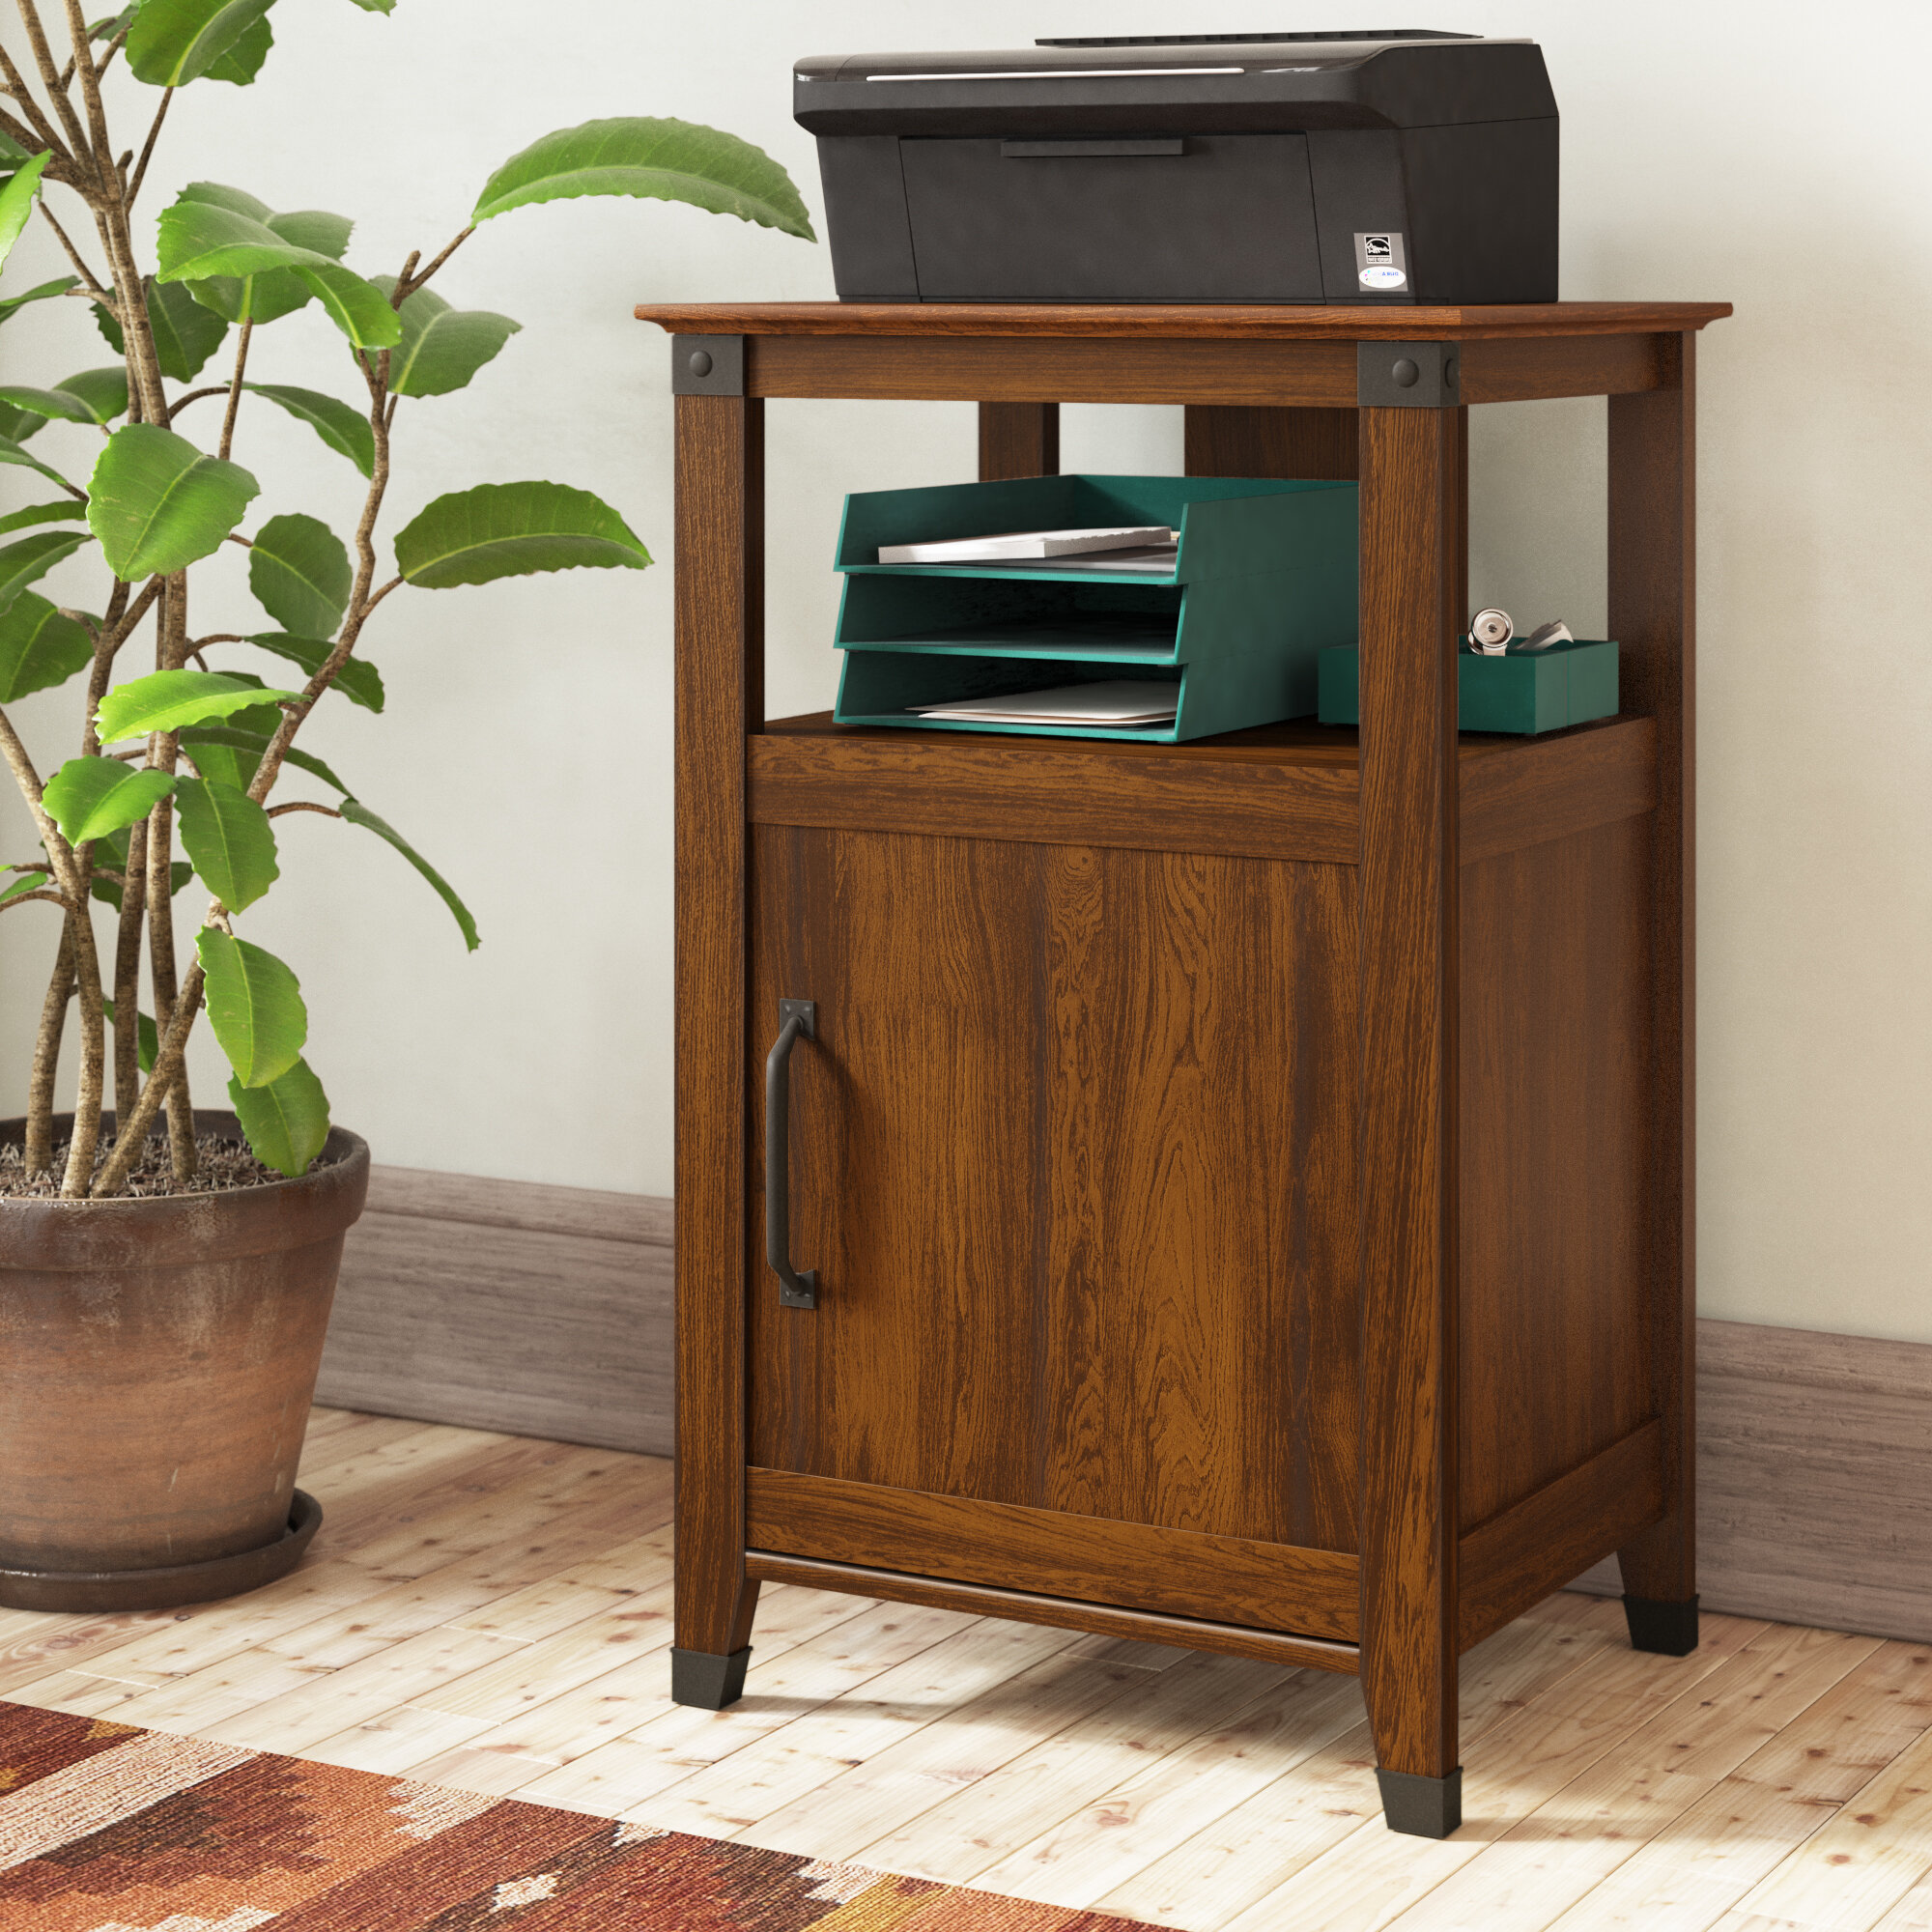 Chel Printer Stand With Storage